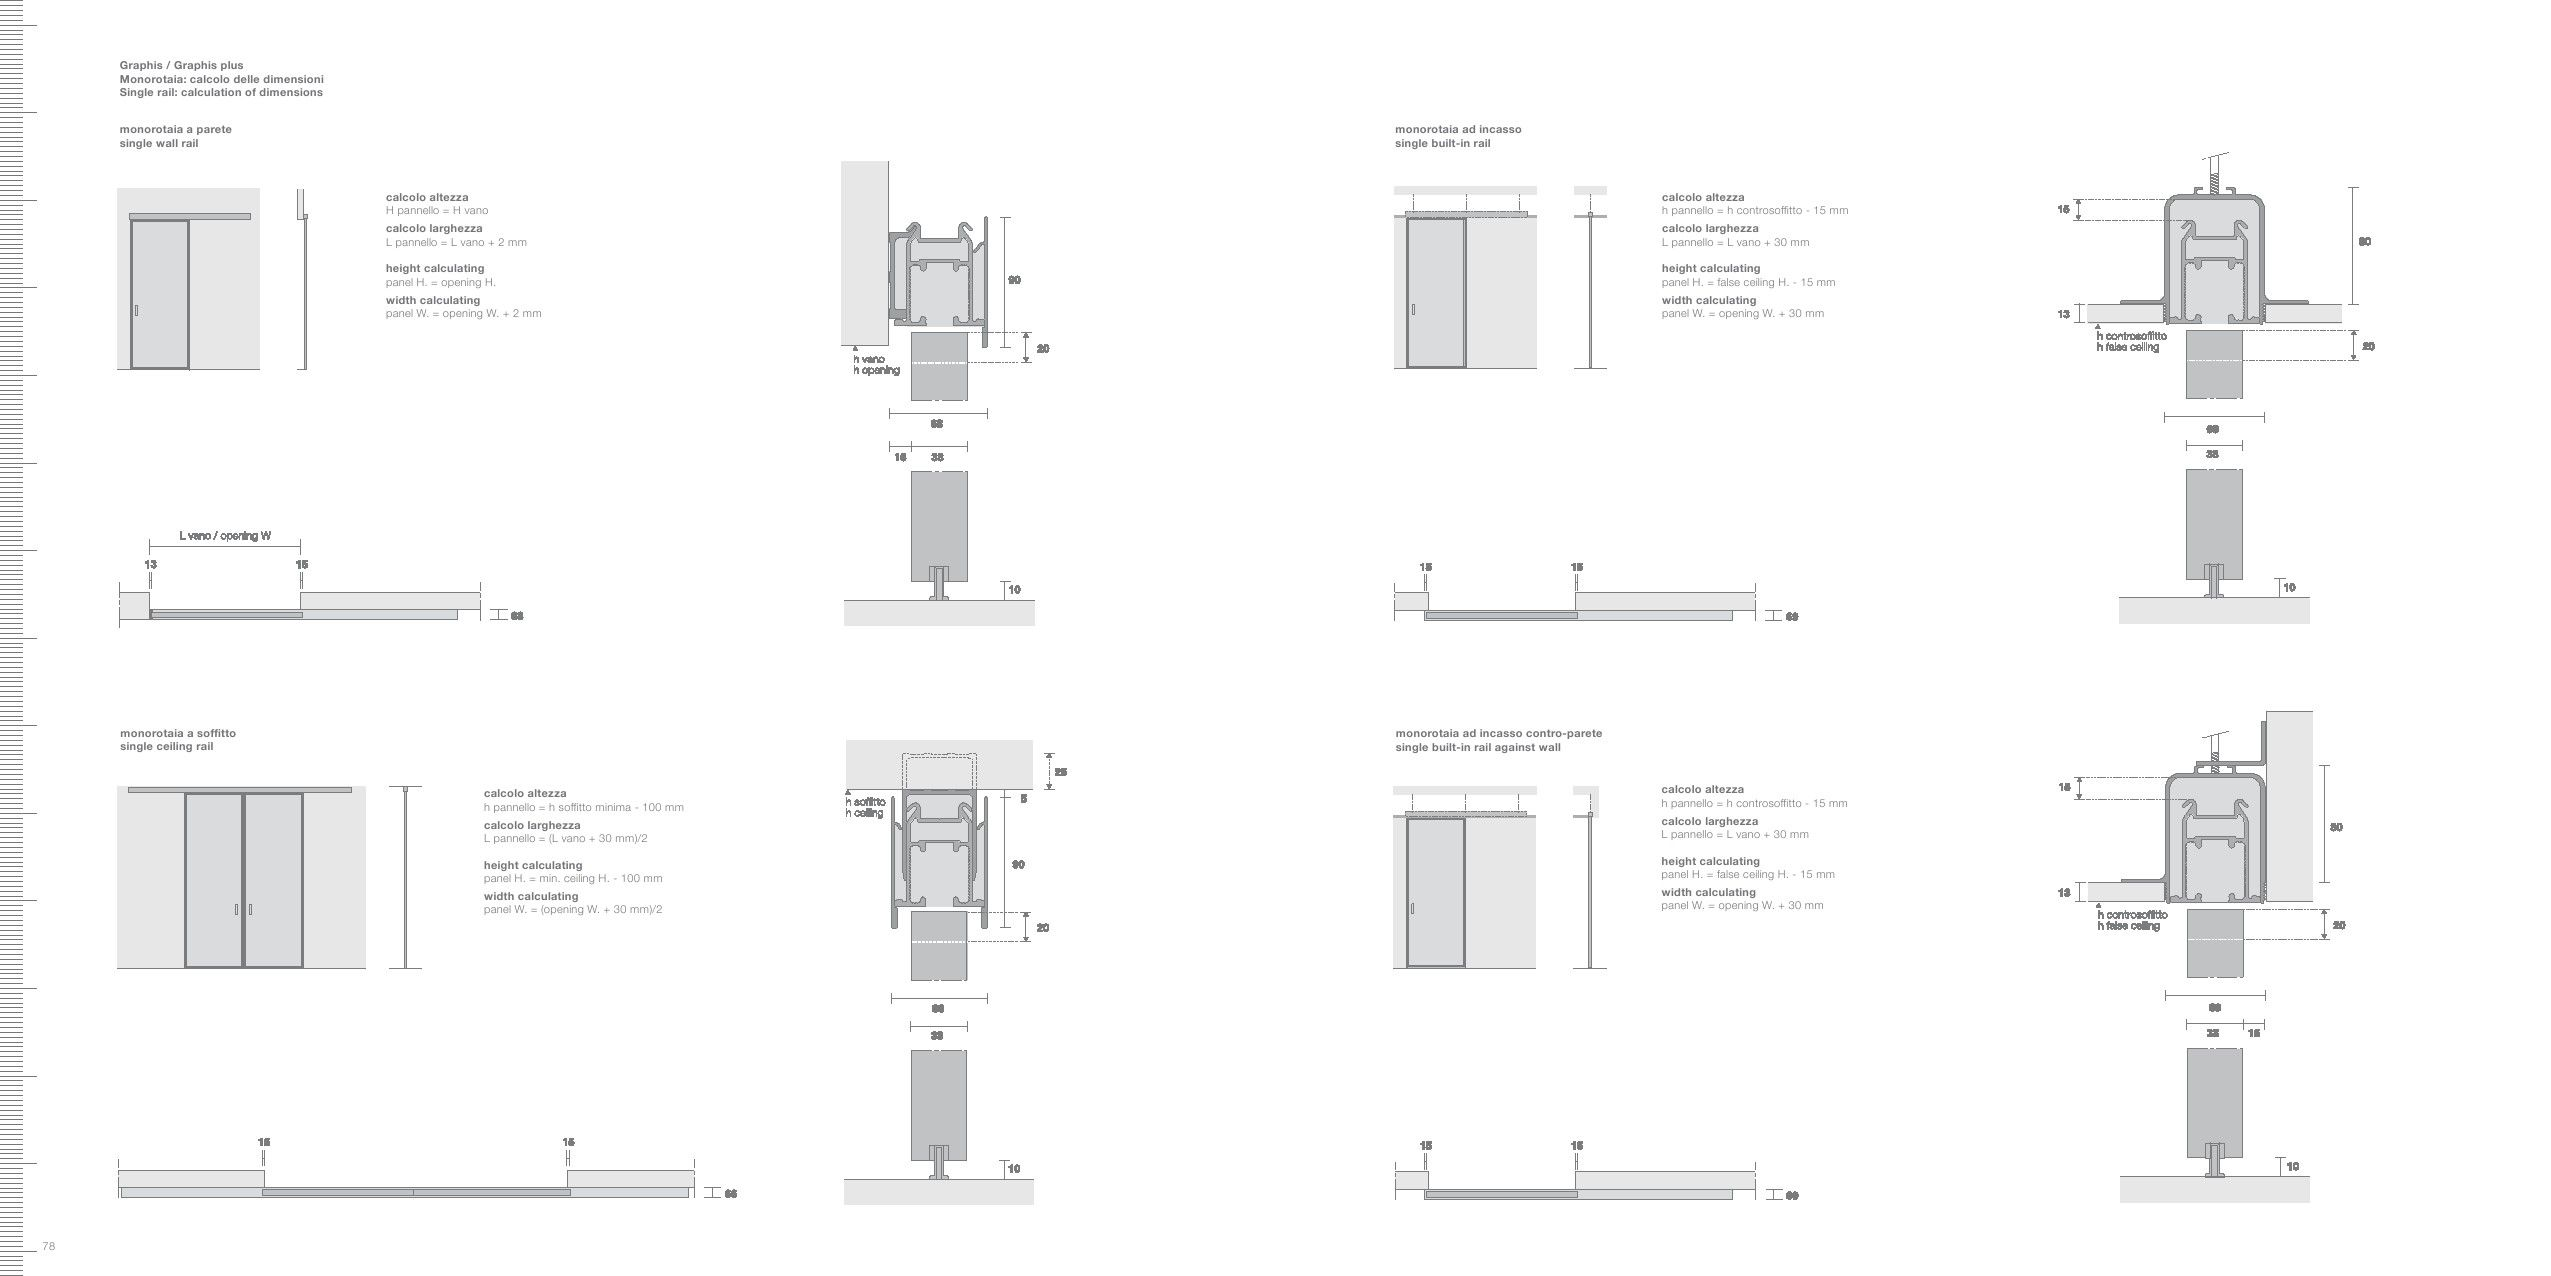 Altezza Minima Soffitto pin by lisa on rimadesio - sliding doors (with images